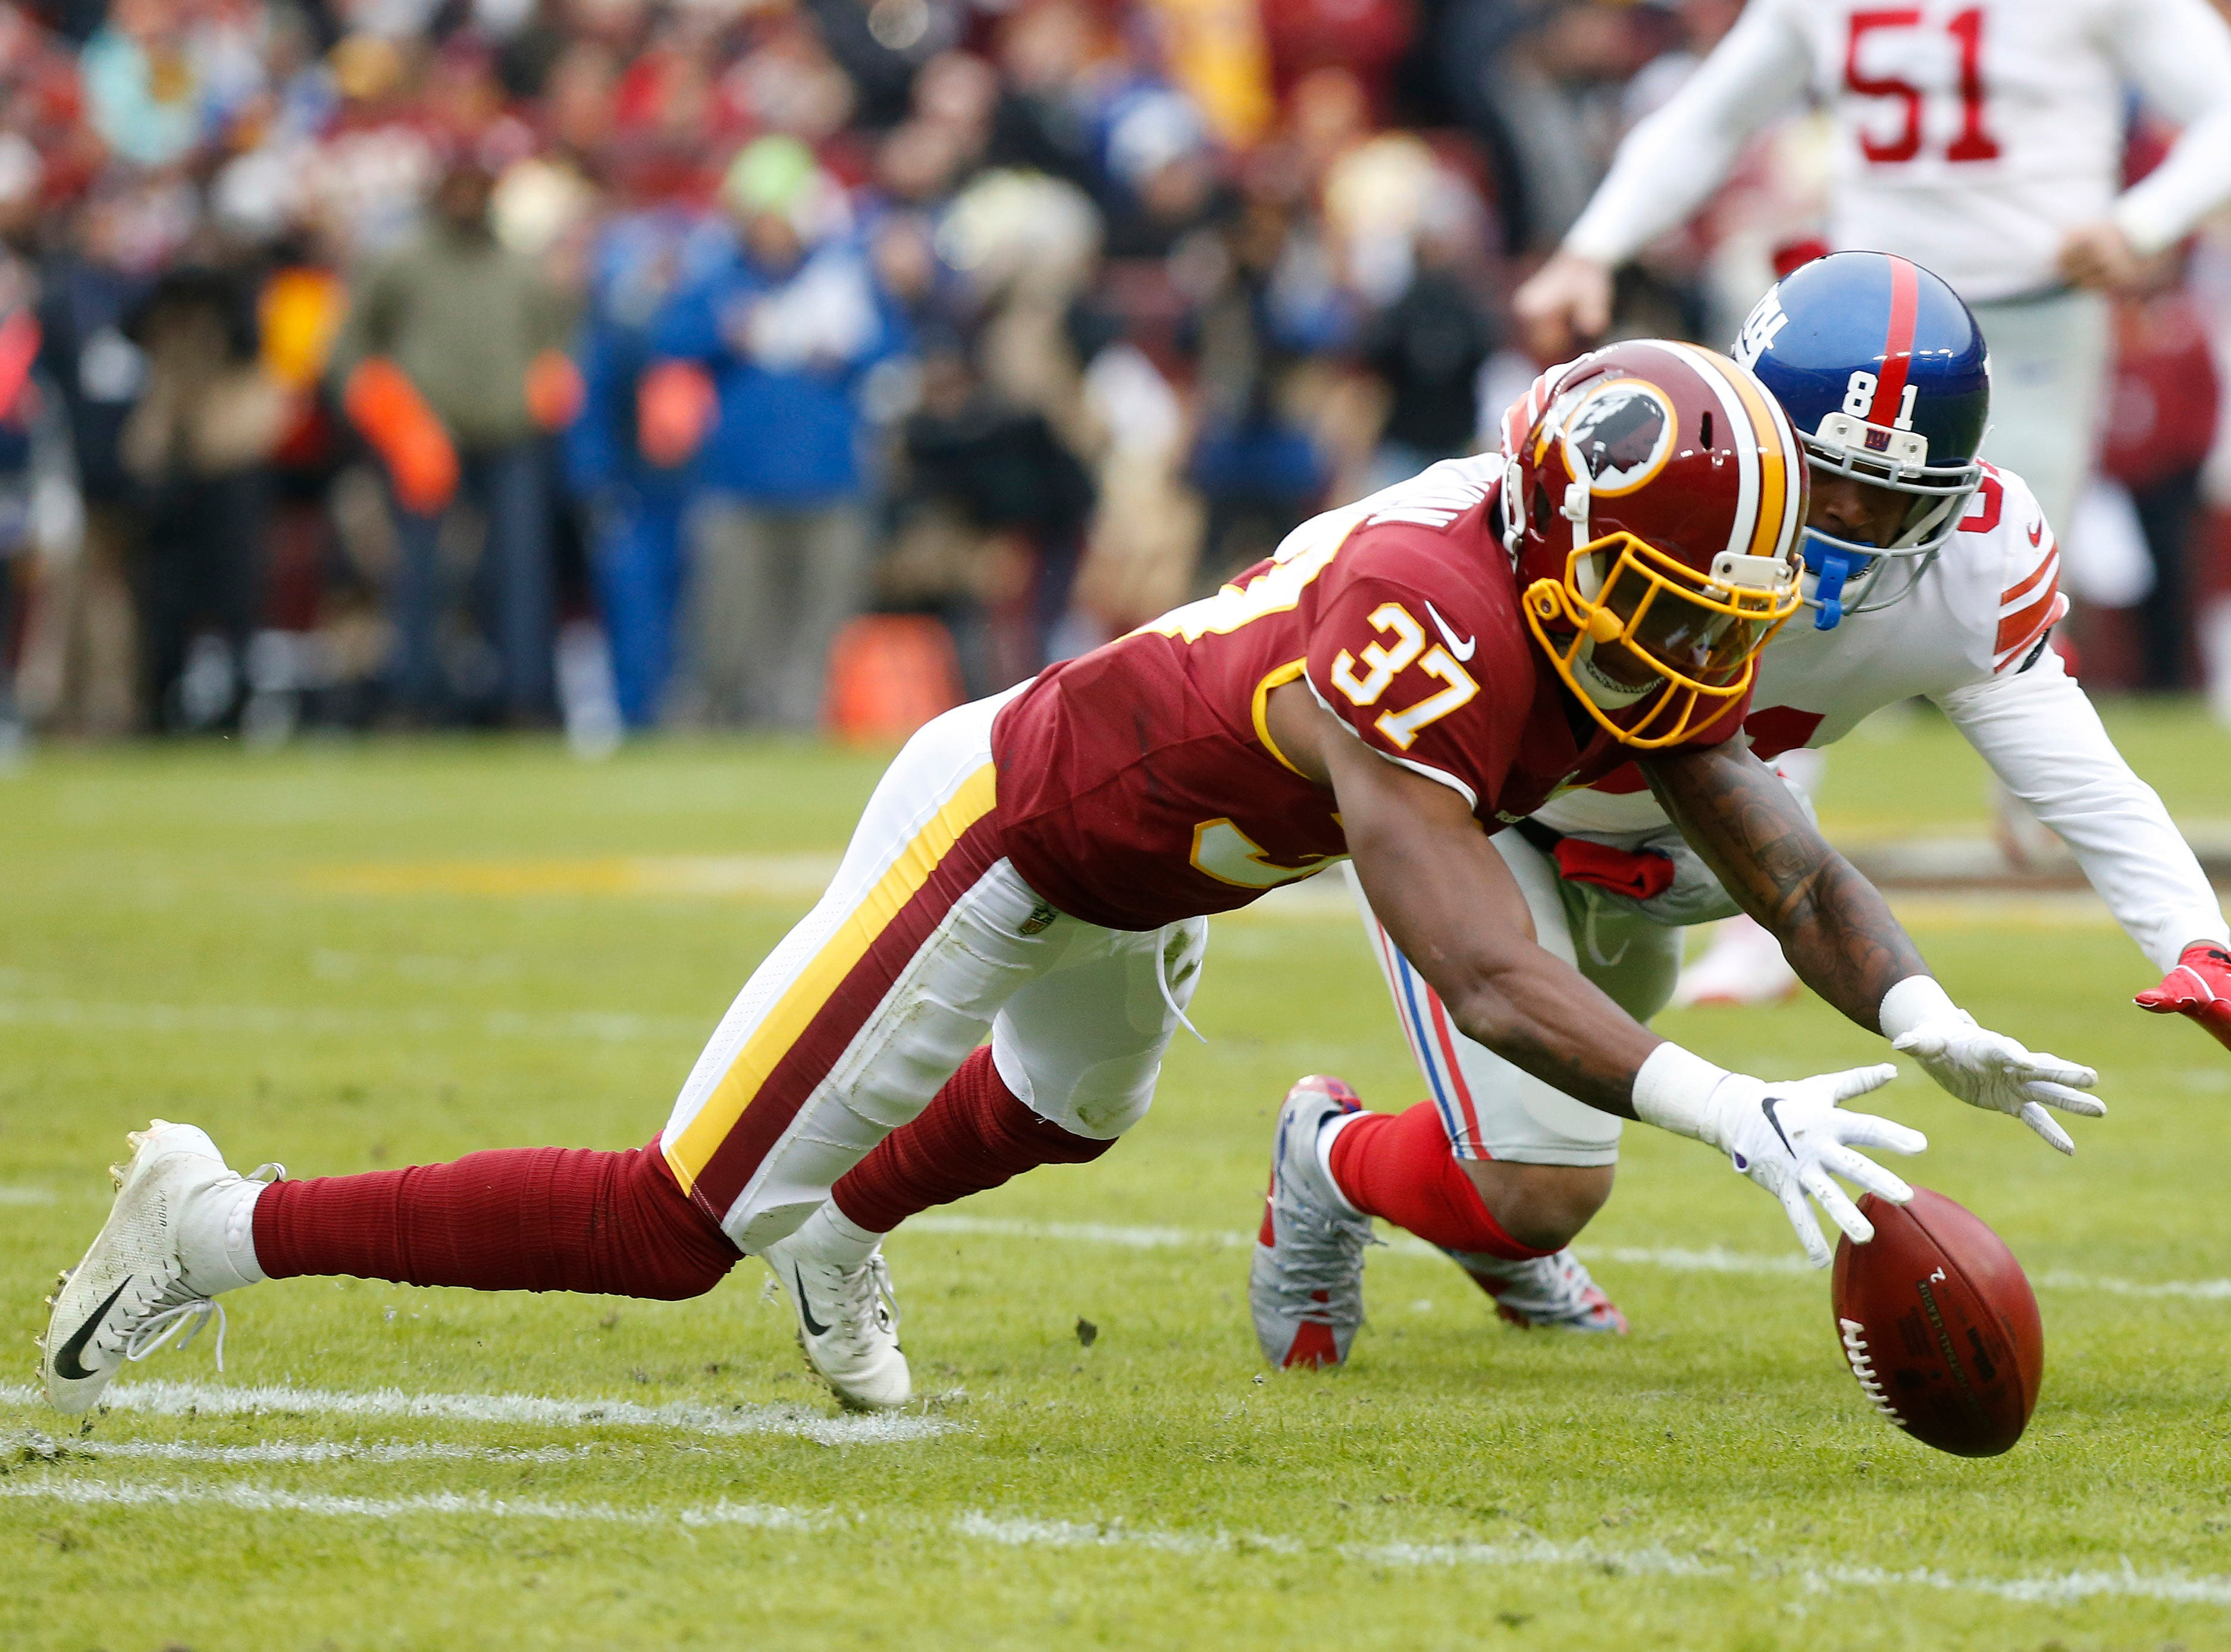 Redskins cornerback Greg Stroman fumbles a punt return as Giants wide receiver Russell Shepard chases.